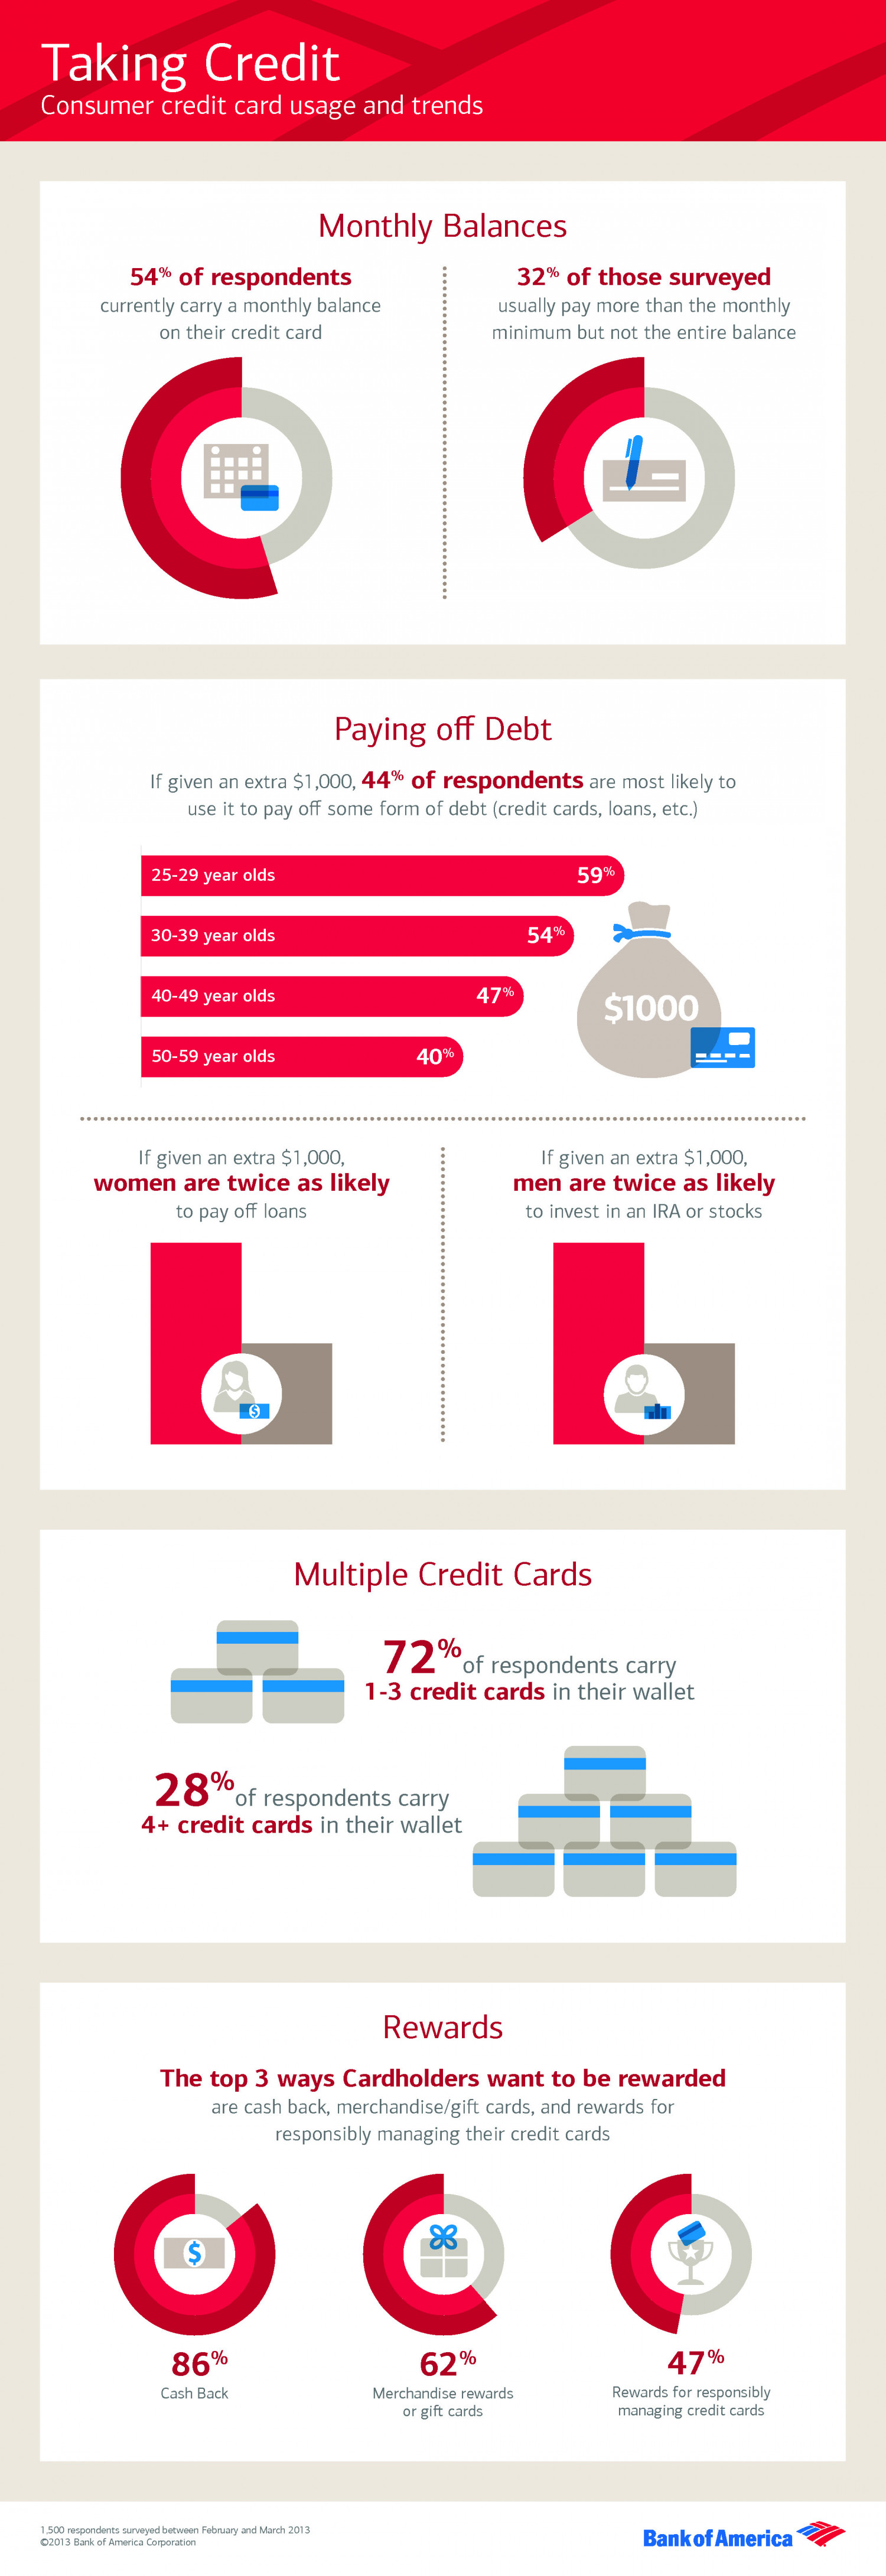 Taking Credit: Consumer credit card usage and trends Infographic